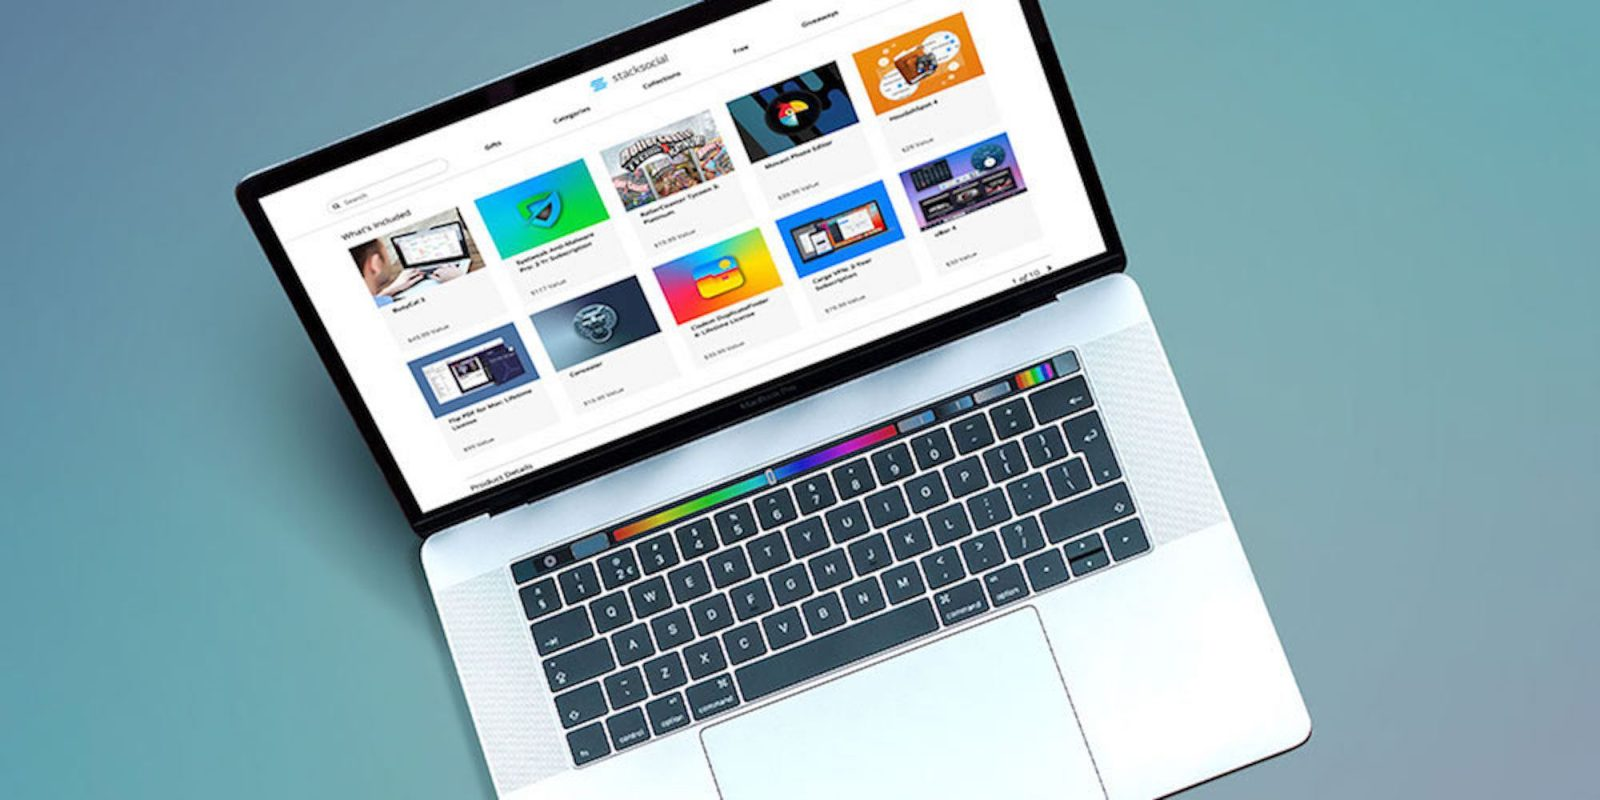 The 2018 Mac Essentials Bundle offers 10 elite apps: BusyCal